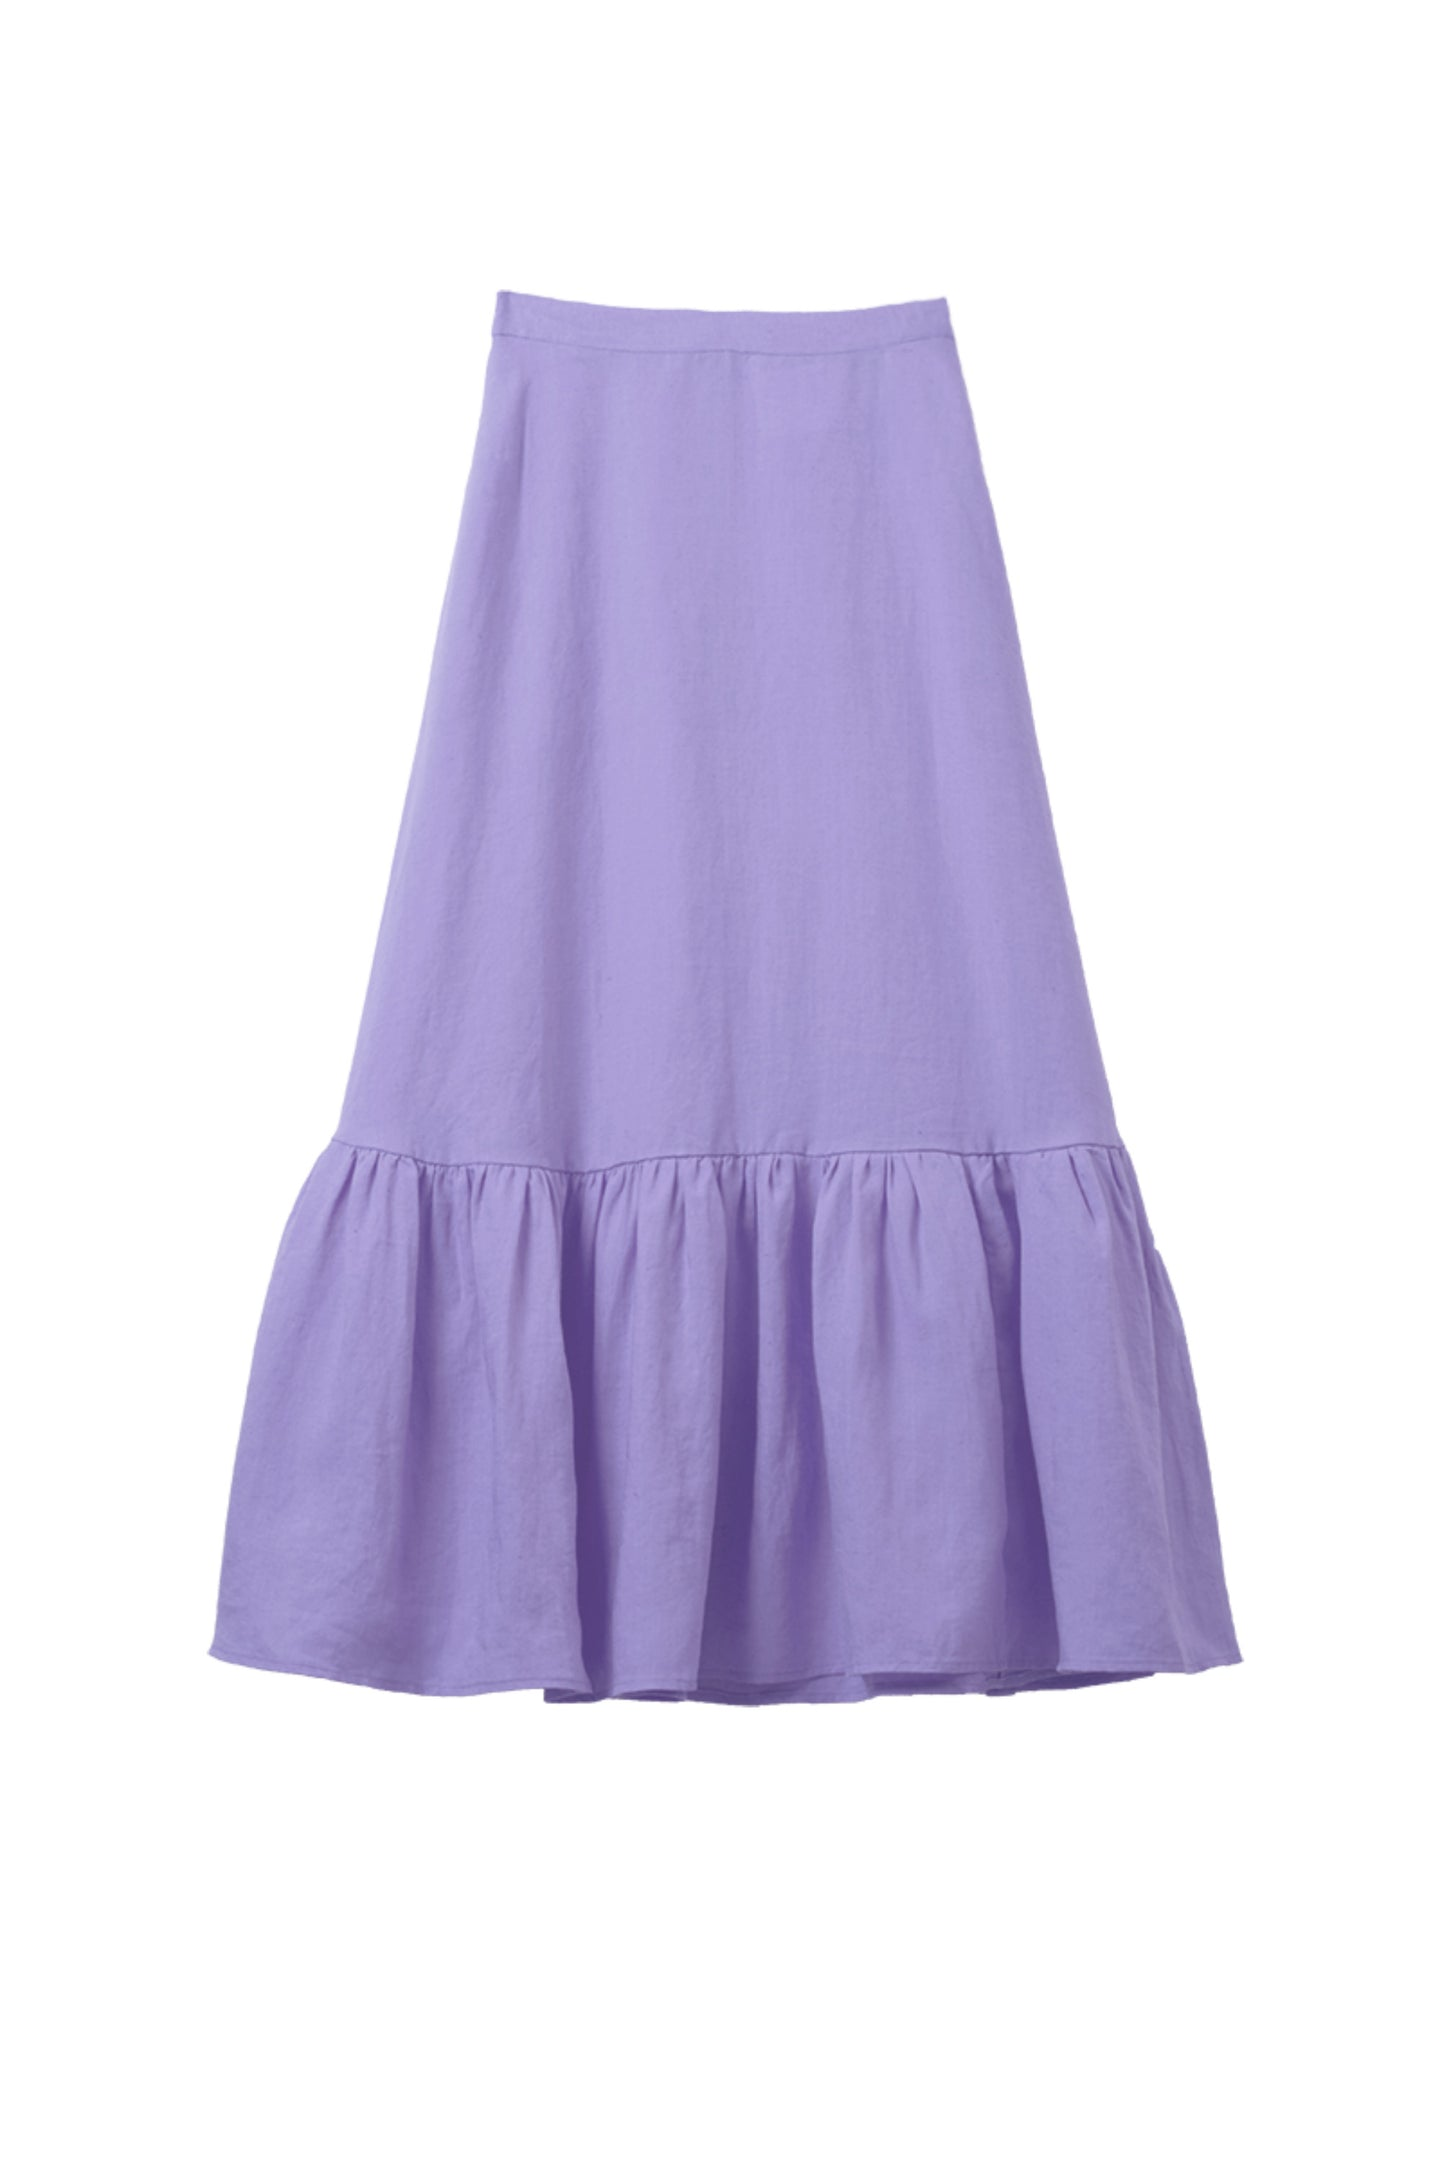 Color Linen Tiered Skirt | Lilac